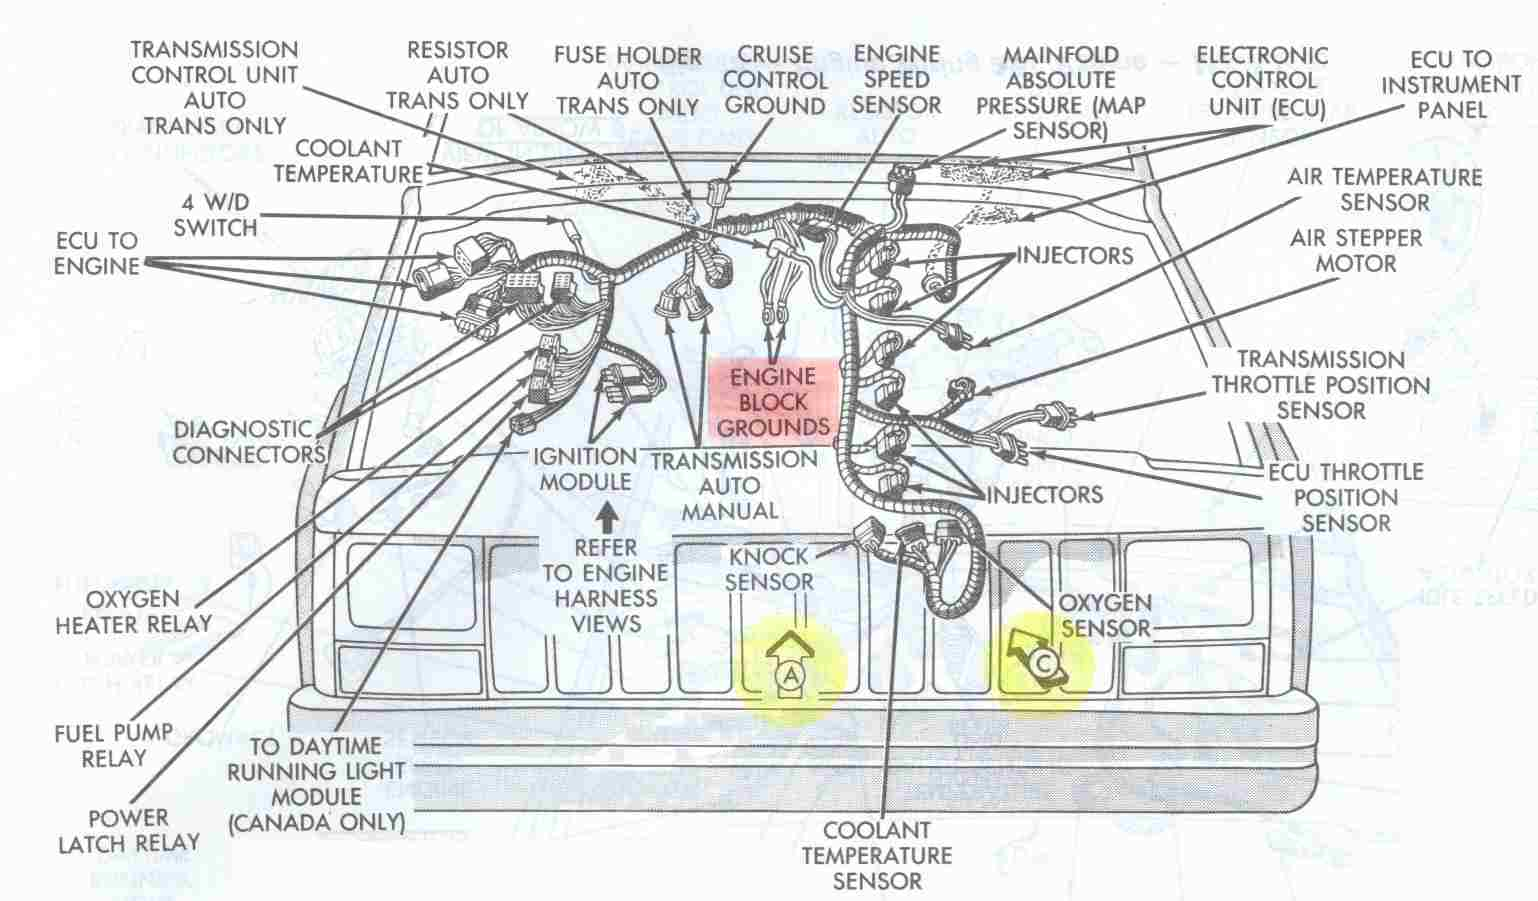 Electrical_Engine_Ground_Points_Overview jeep cherokee electrical diagnosing erratic behavior of engine wiring diagram for 1998 jeep grand cherokee at gsmx.co